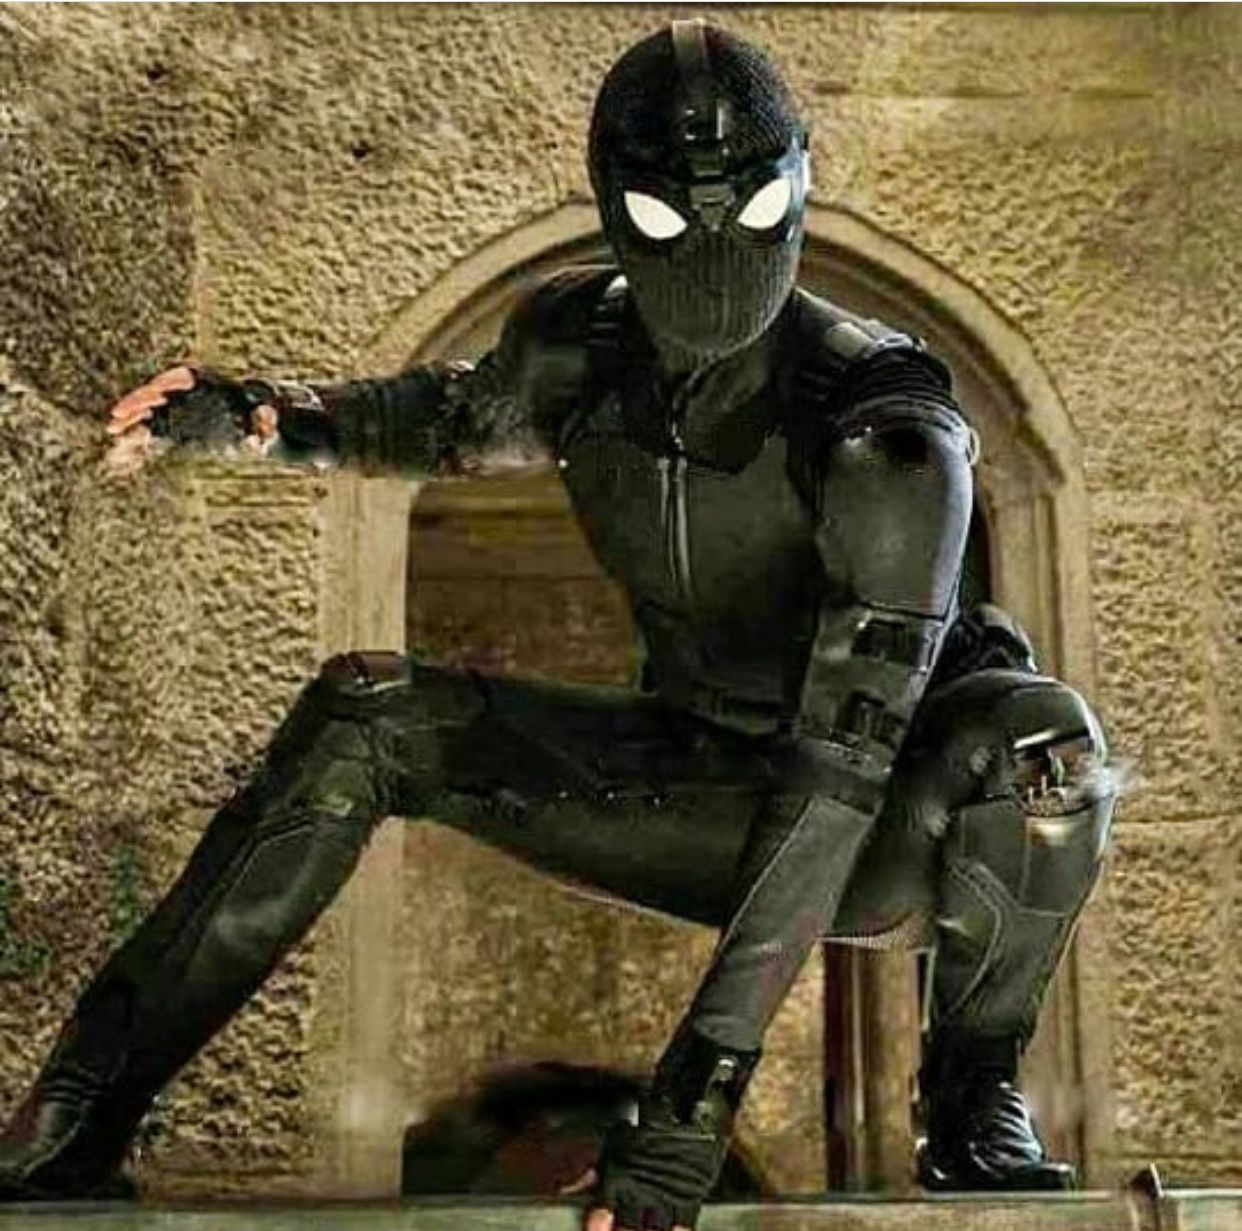 Spider Man Far From Home Stealth Suit Aka The Comfy Suit According To Tom But I Love It Soo Much Marvel Spiderman Stealth Suit Spiderman Homecoming